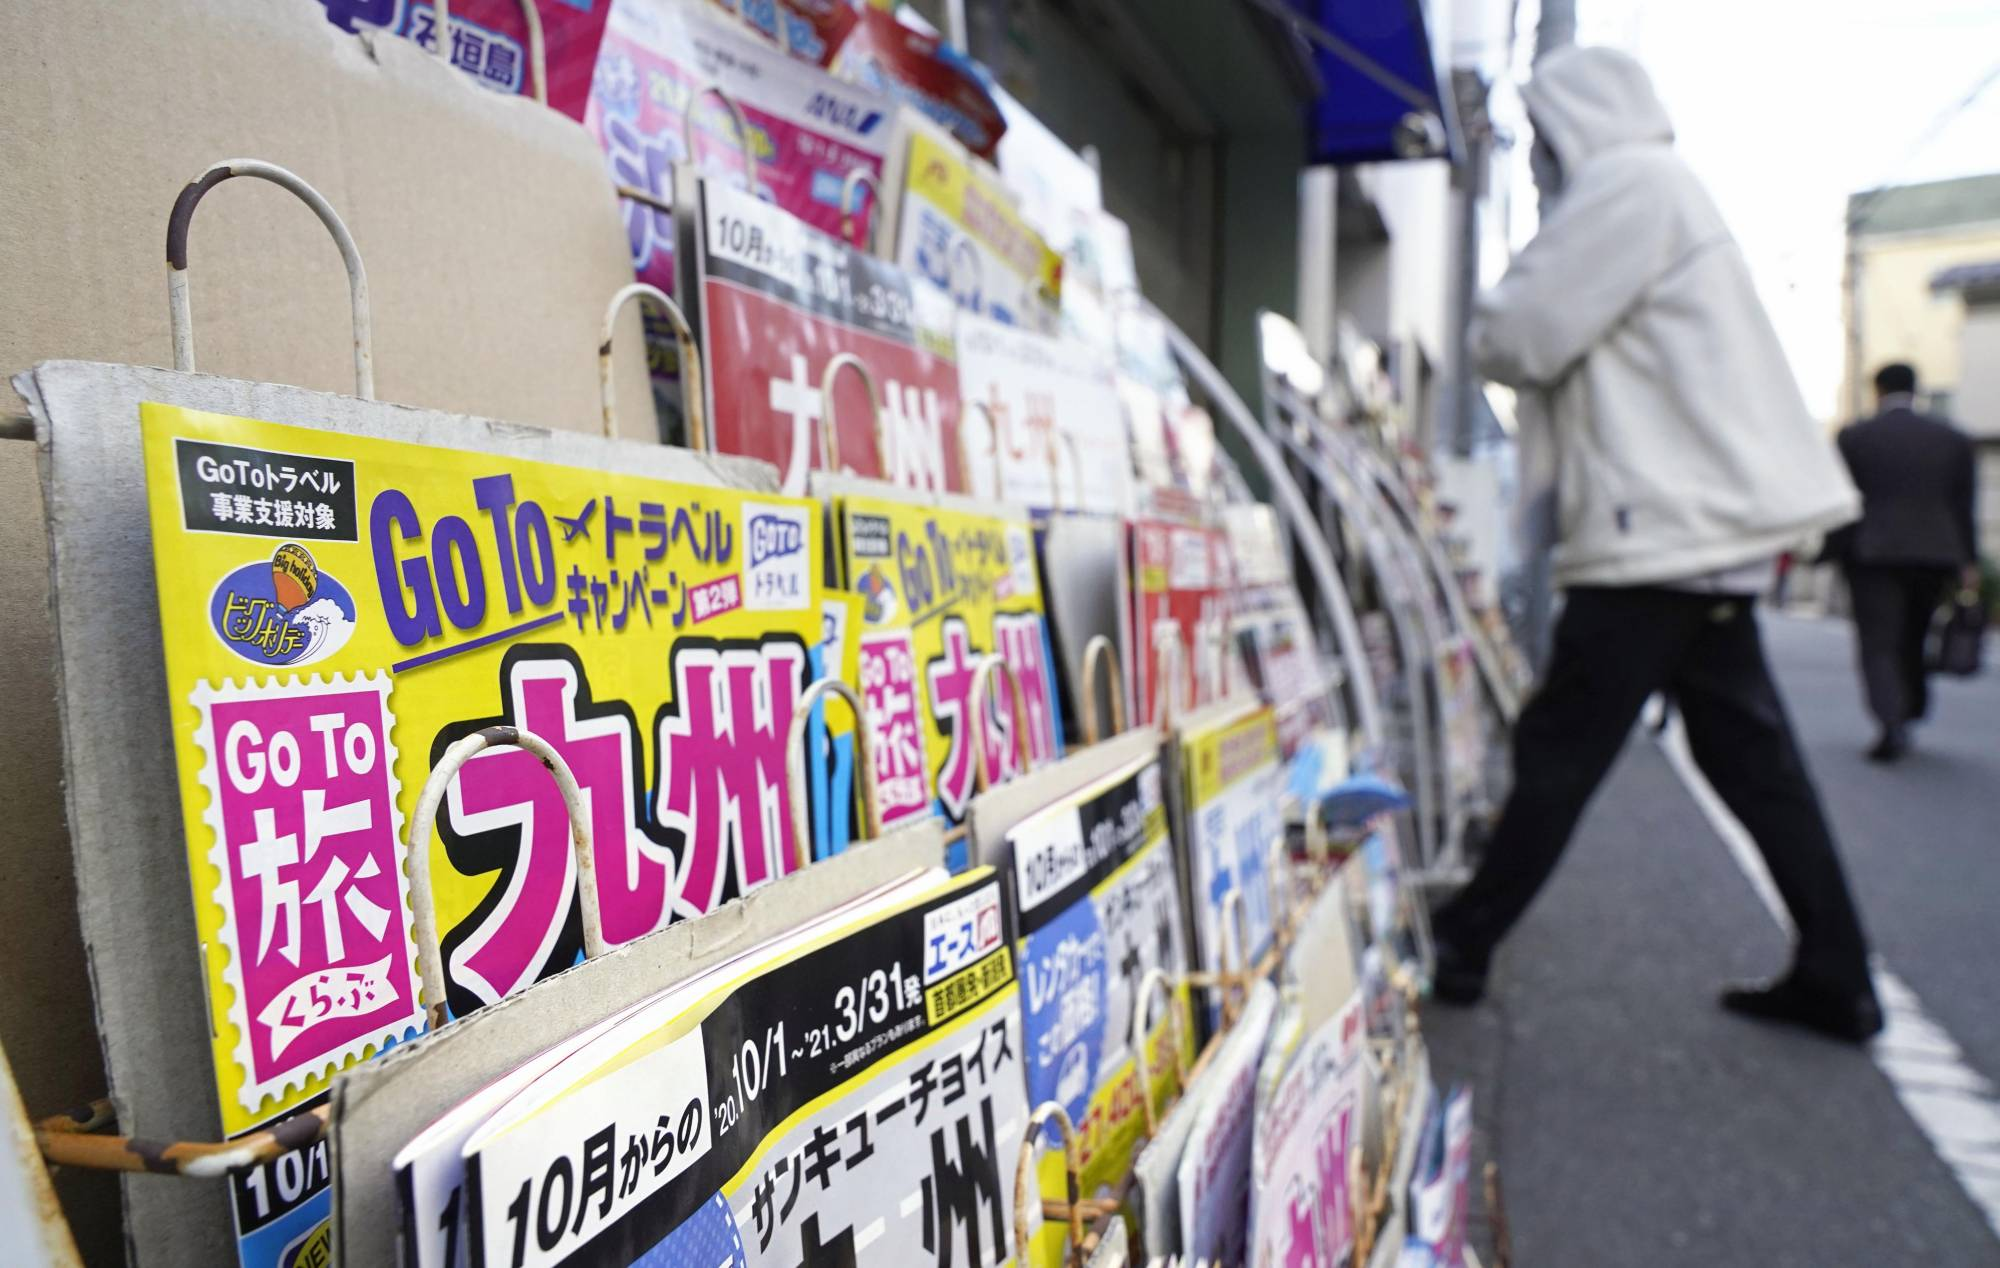 News stand in Japan with Japan's hospitality industry Go To Travel campaign on magazine cover